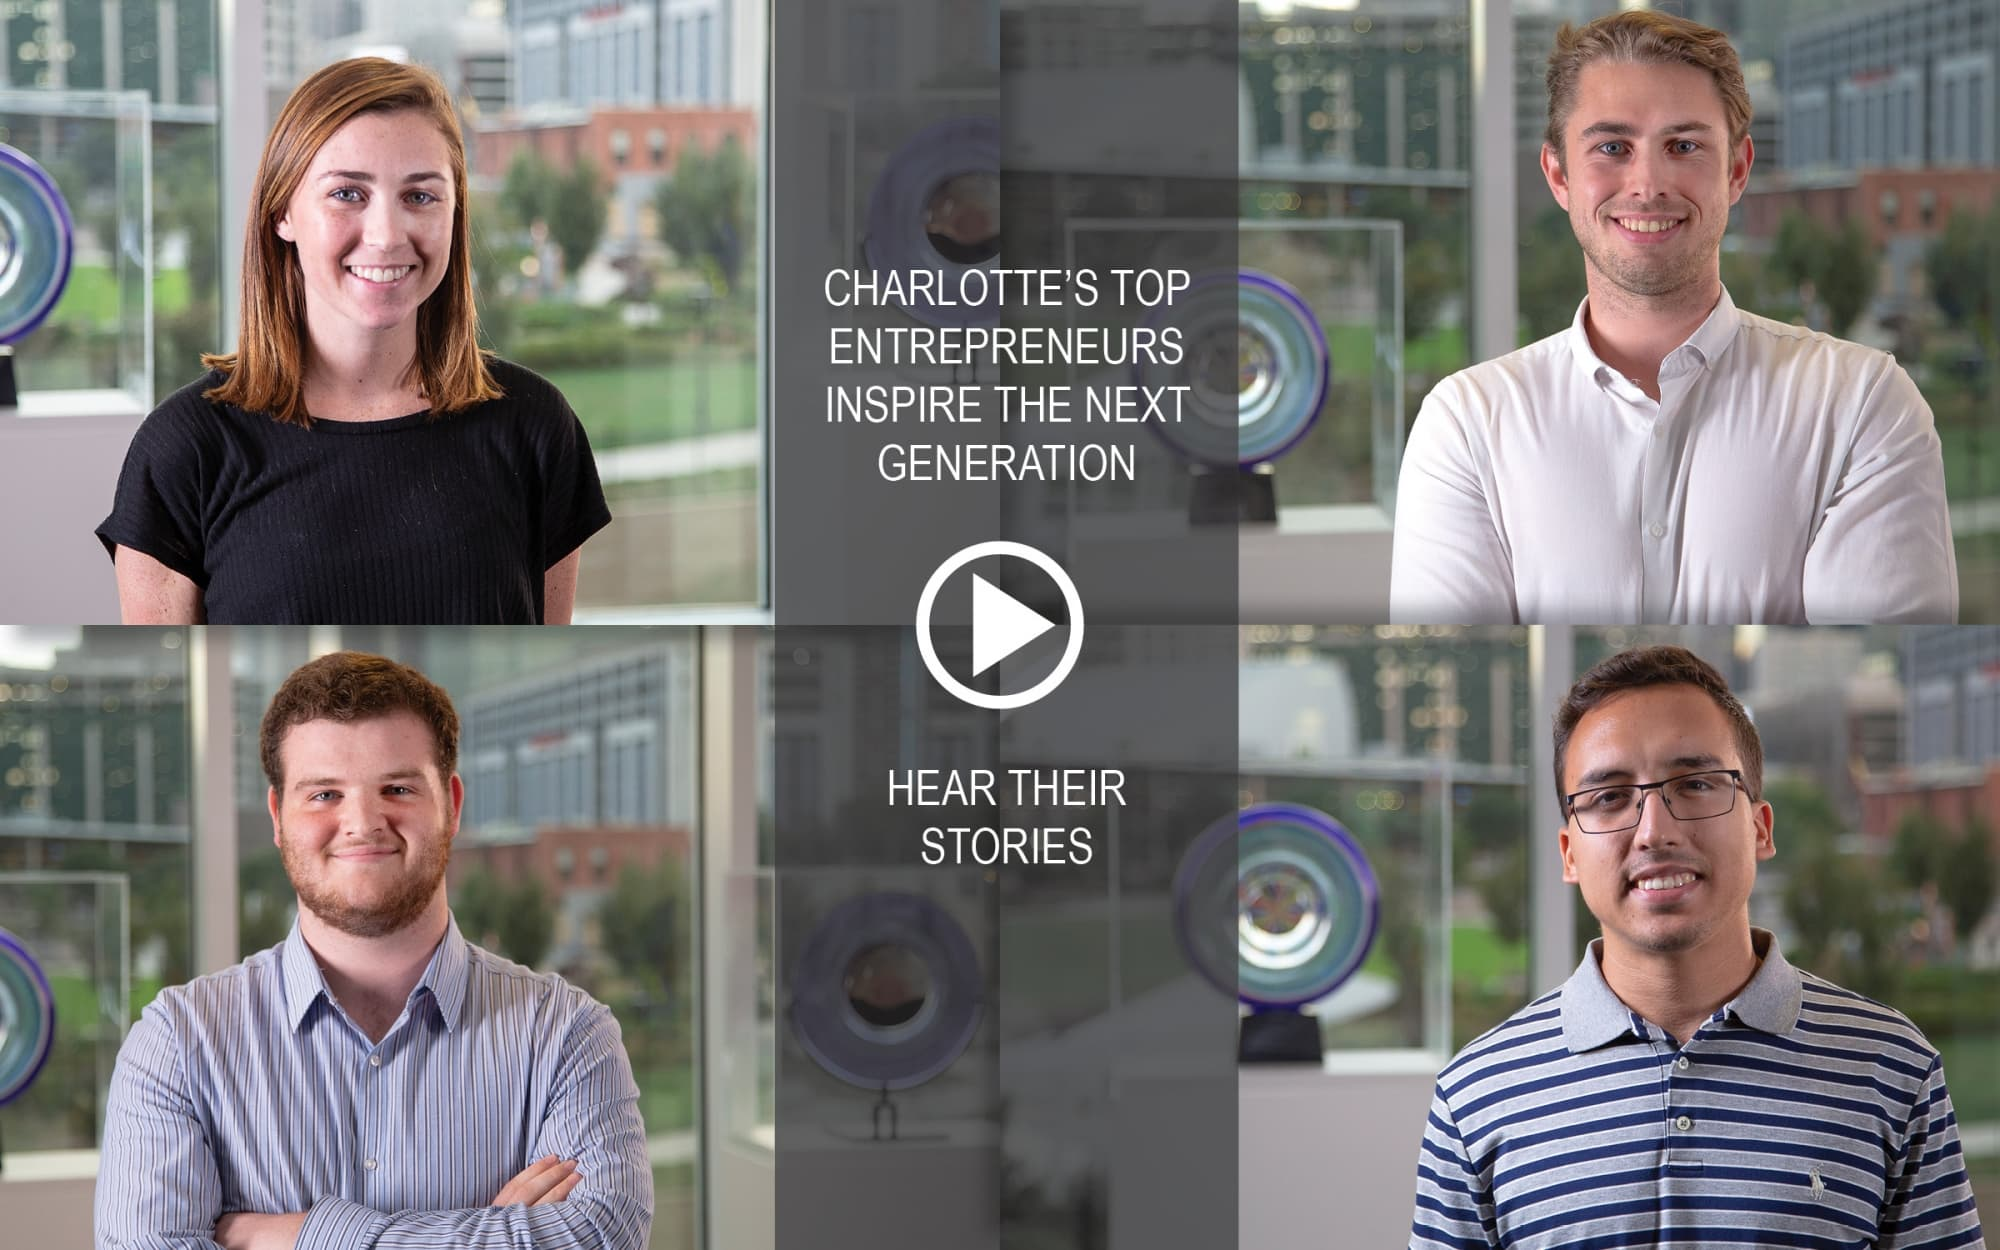 Charlotte's top entrepreneurs inspire the next generation